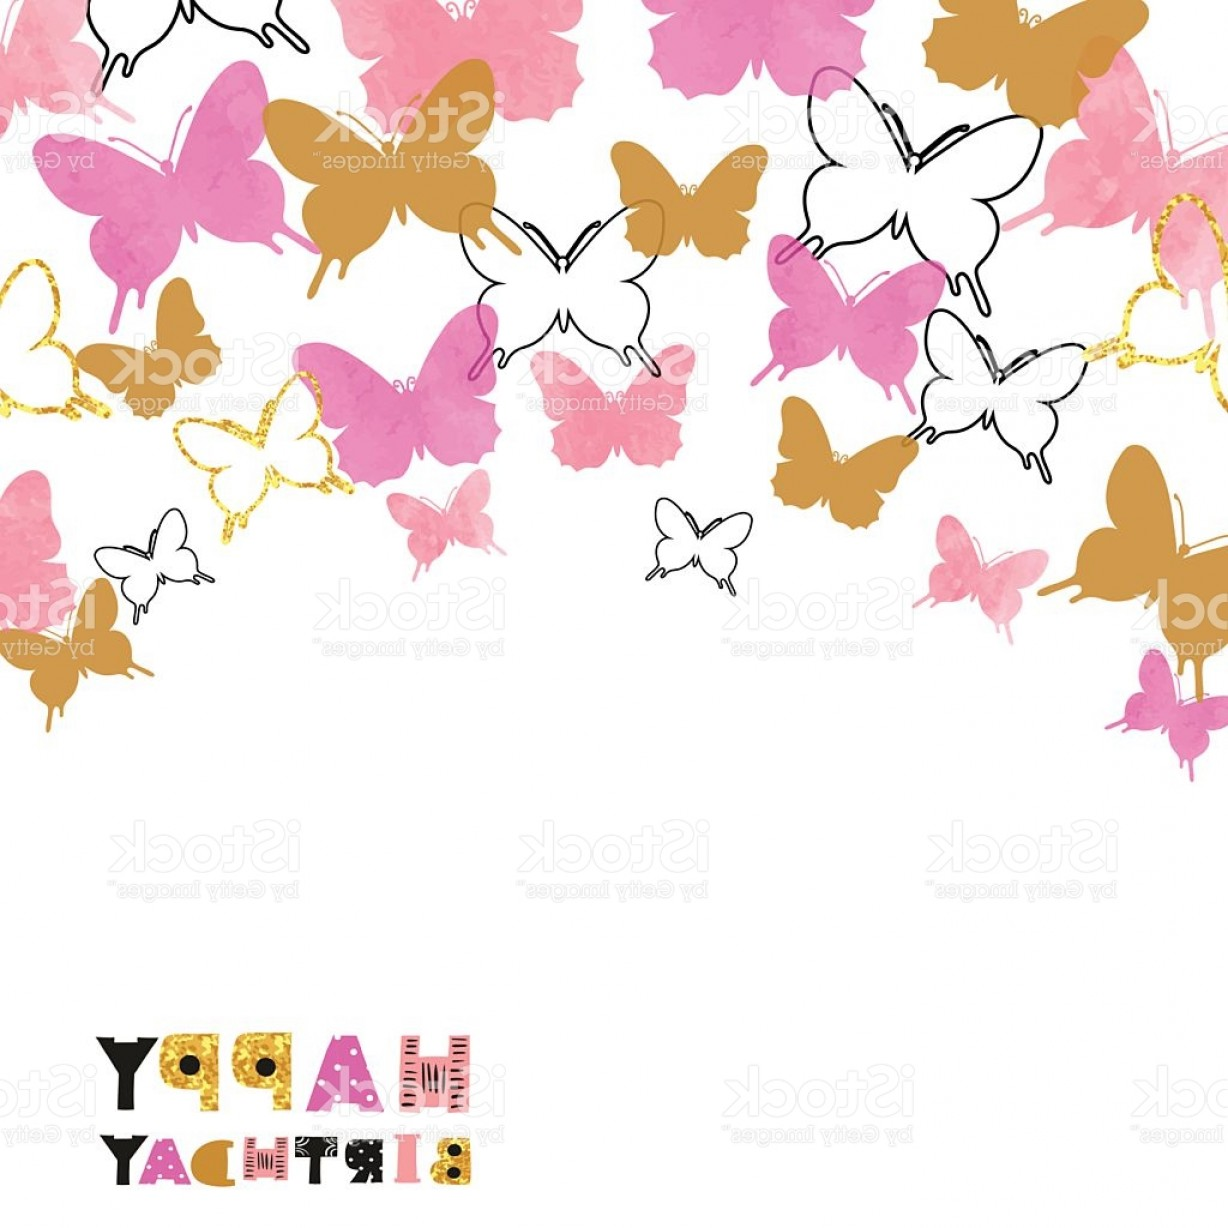 Birthday Card Vector Frame Designs: Happy Birthday Card Design With Butterflies Gm